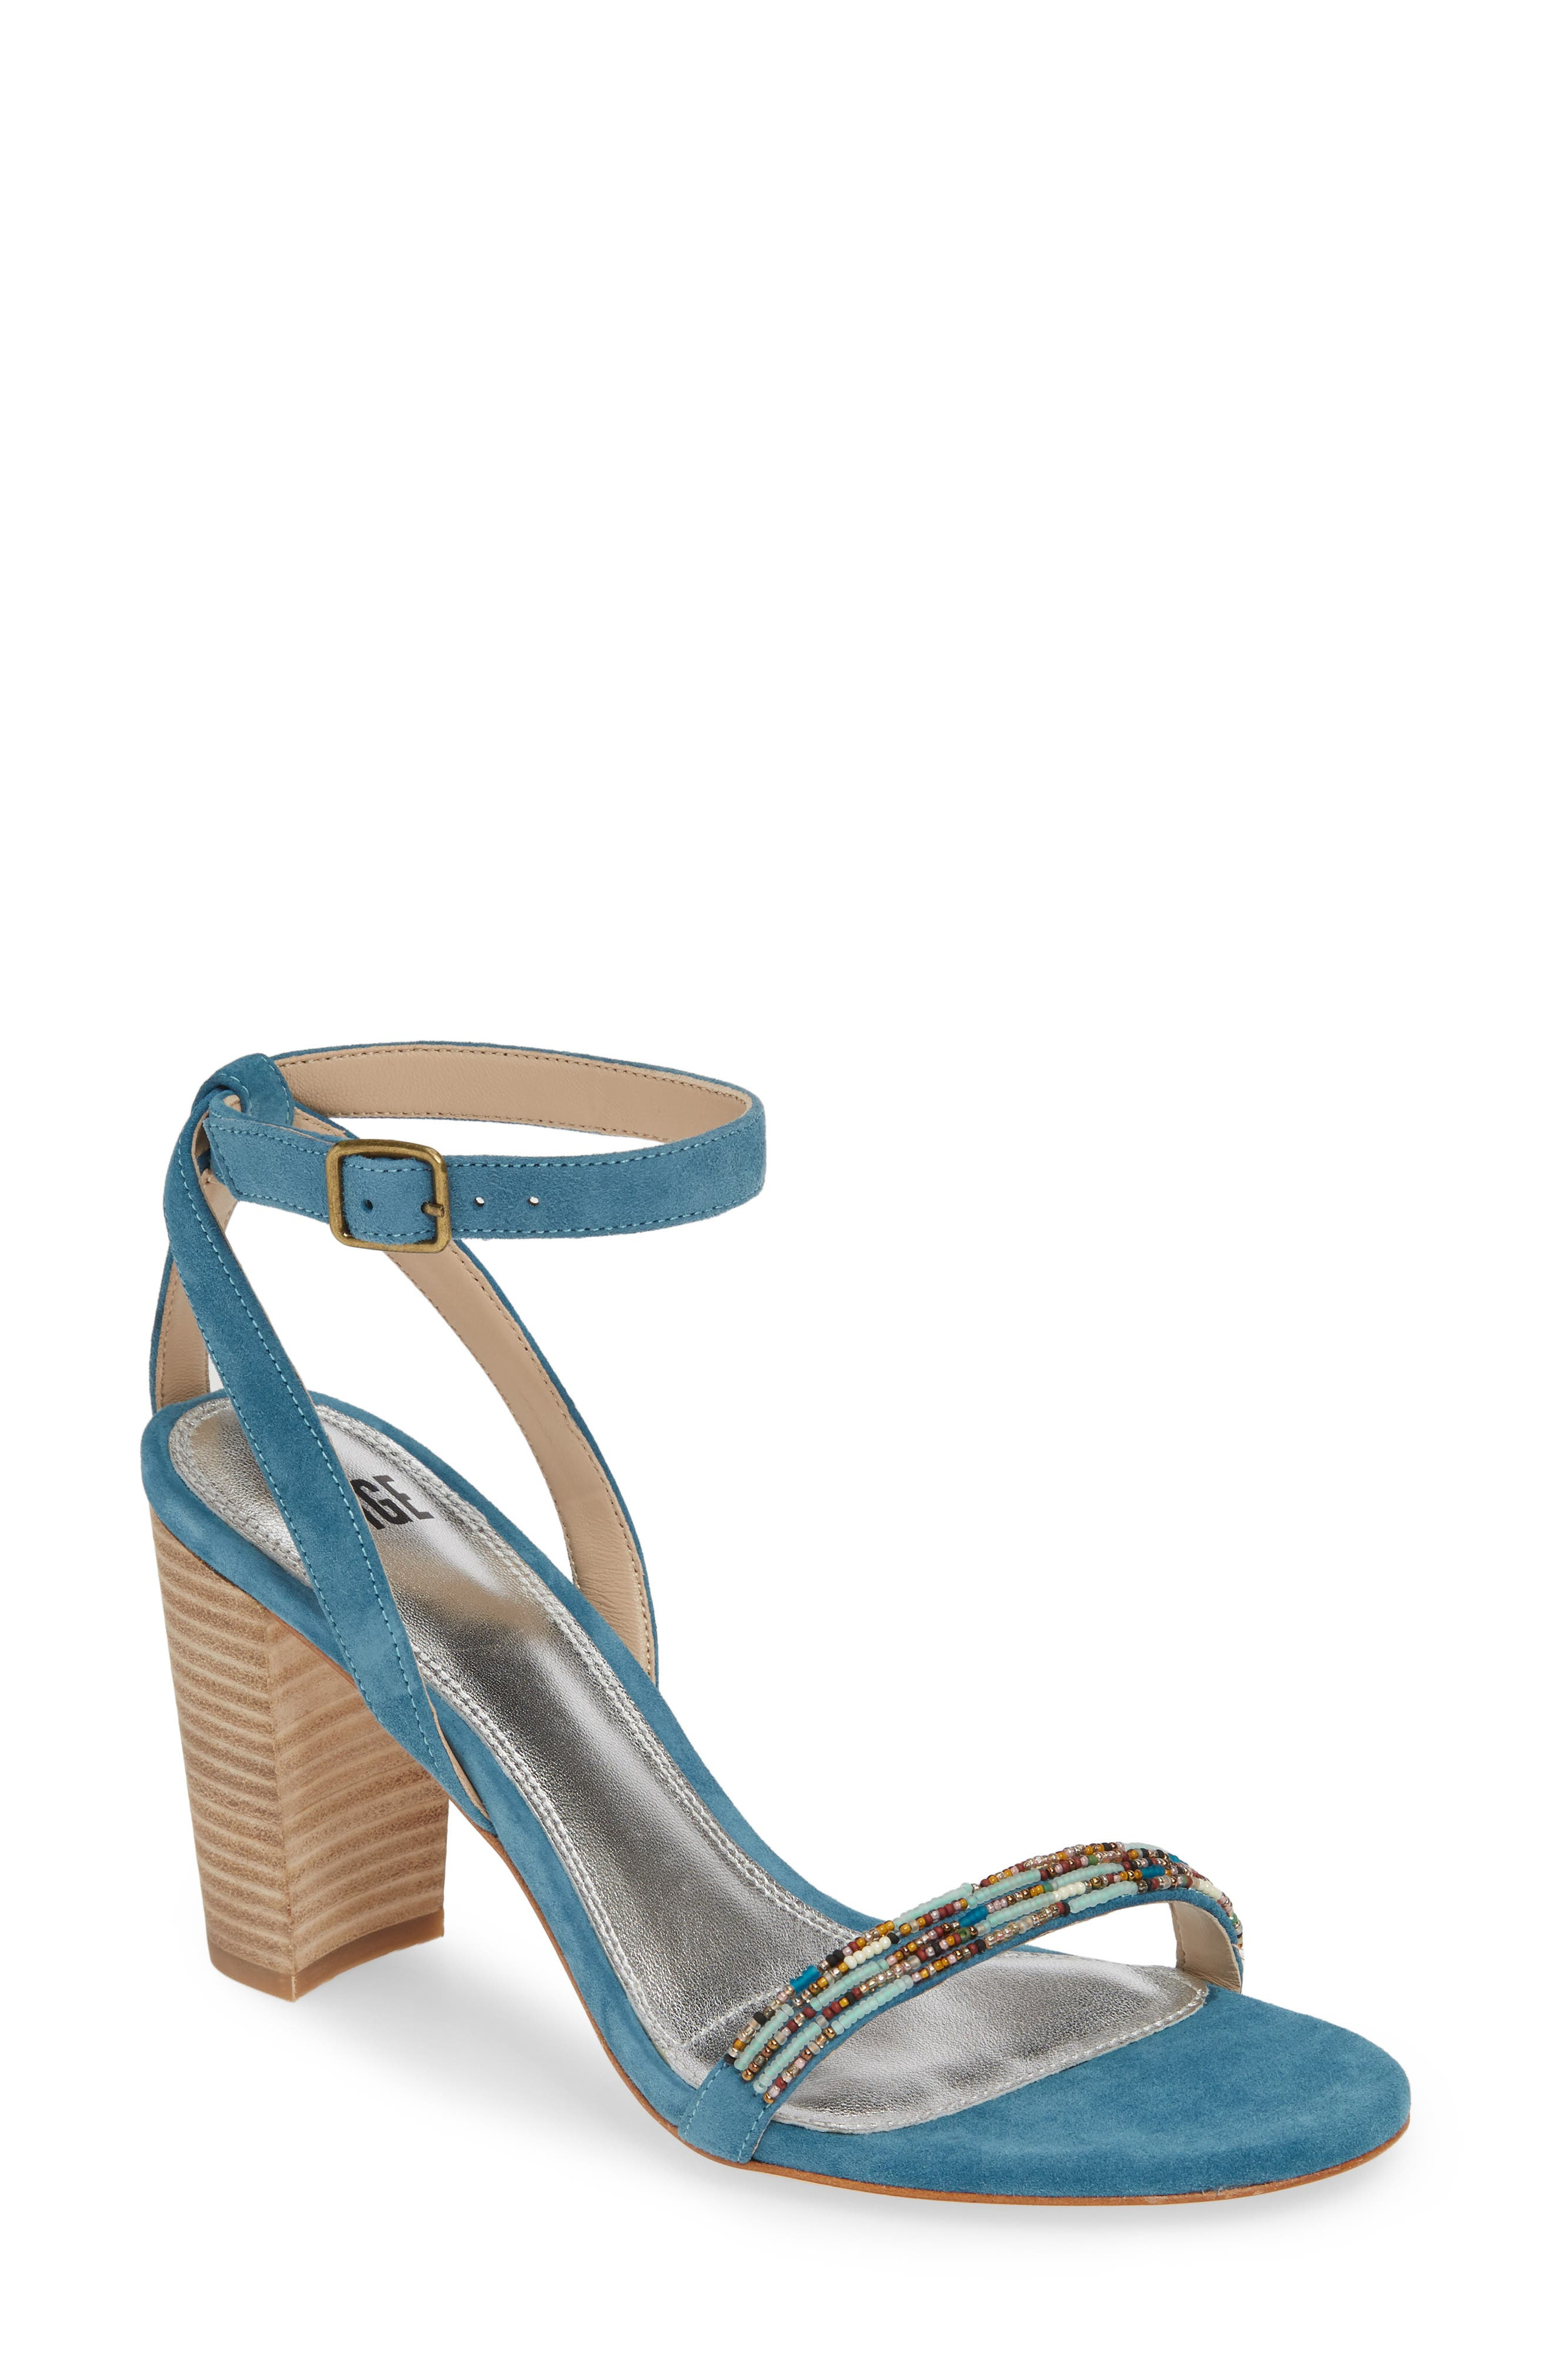 PAIGE Gabriella Beaded Sandal, Main, color, BLUE